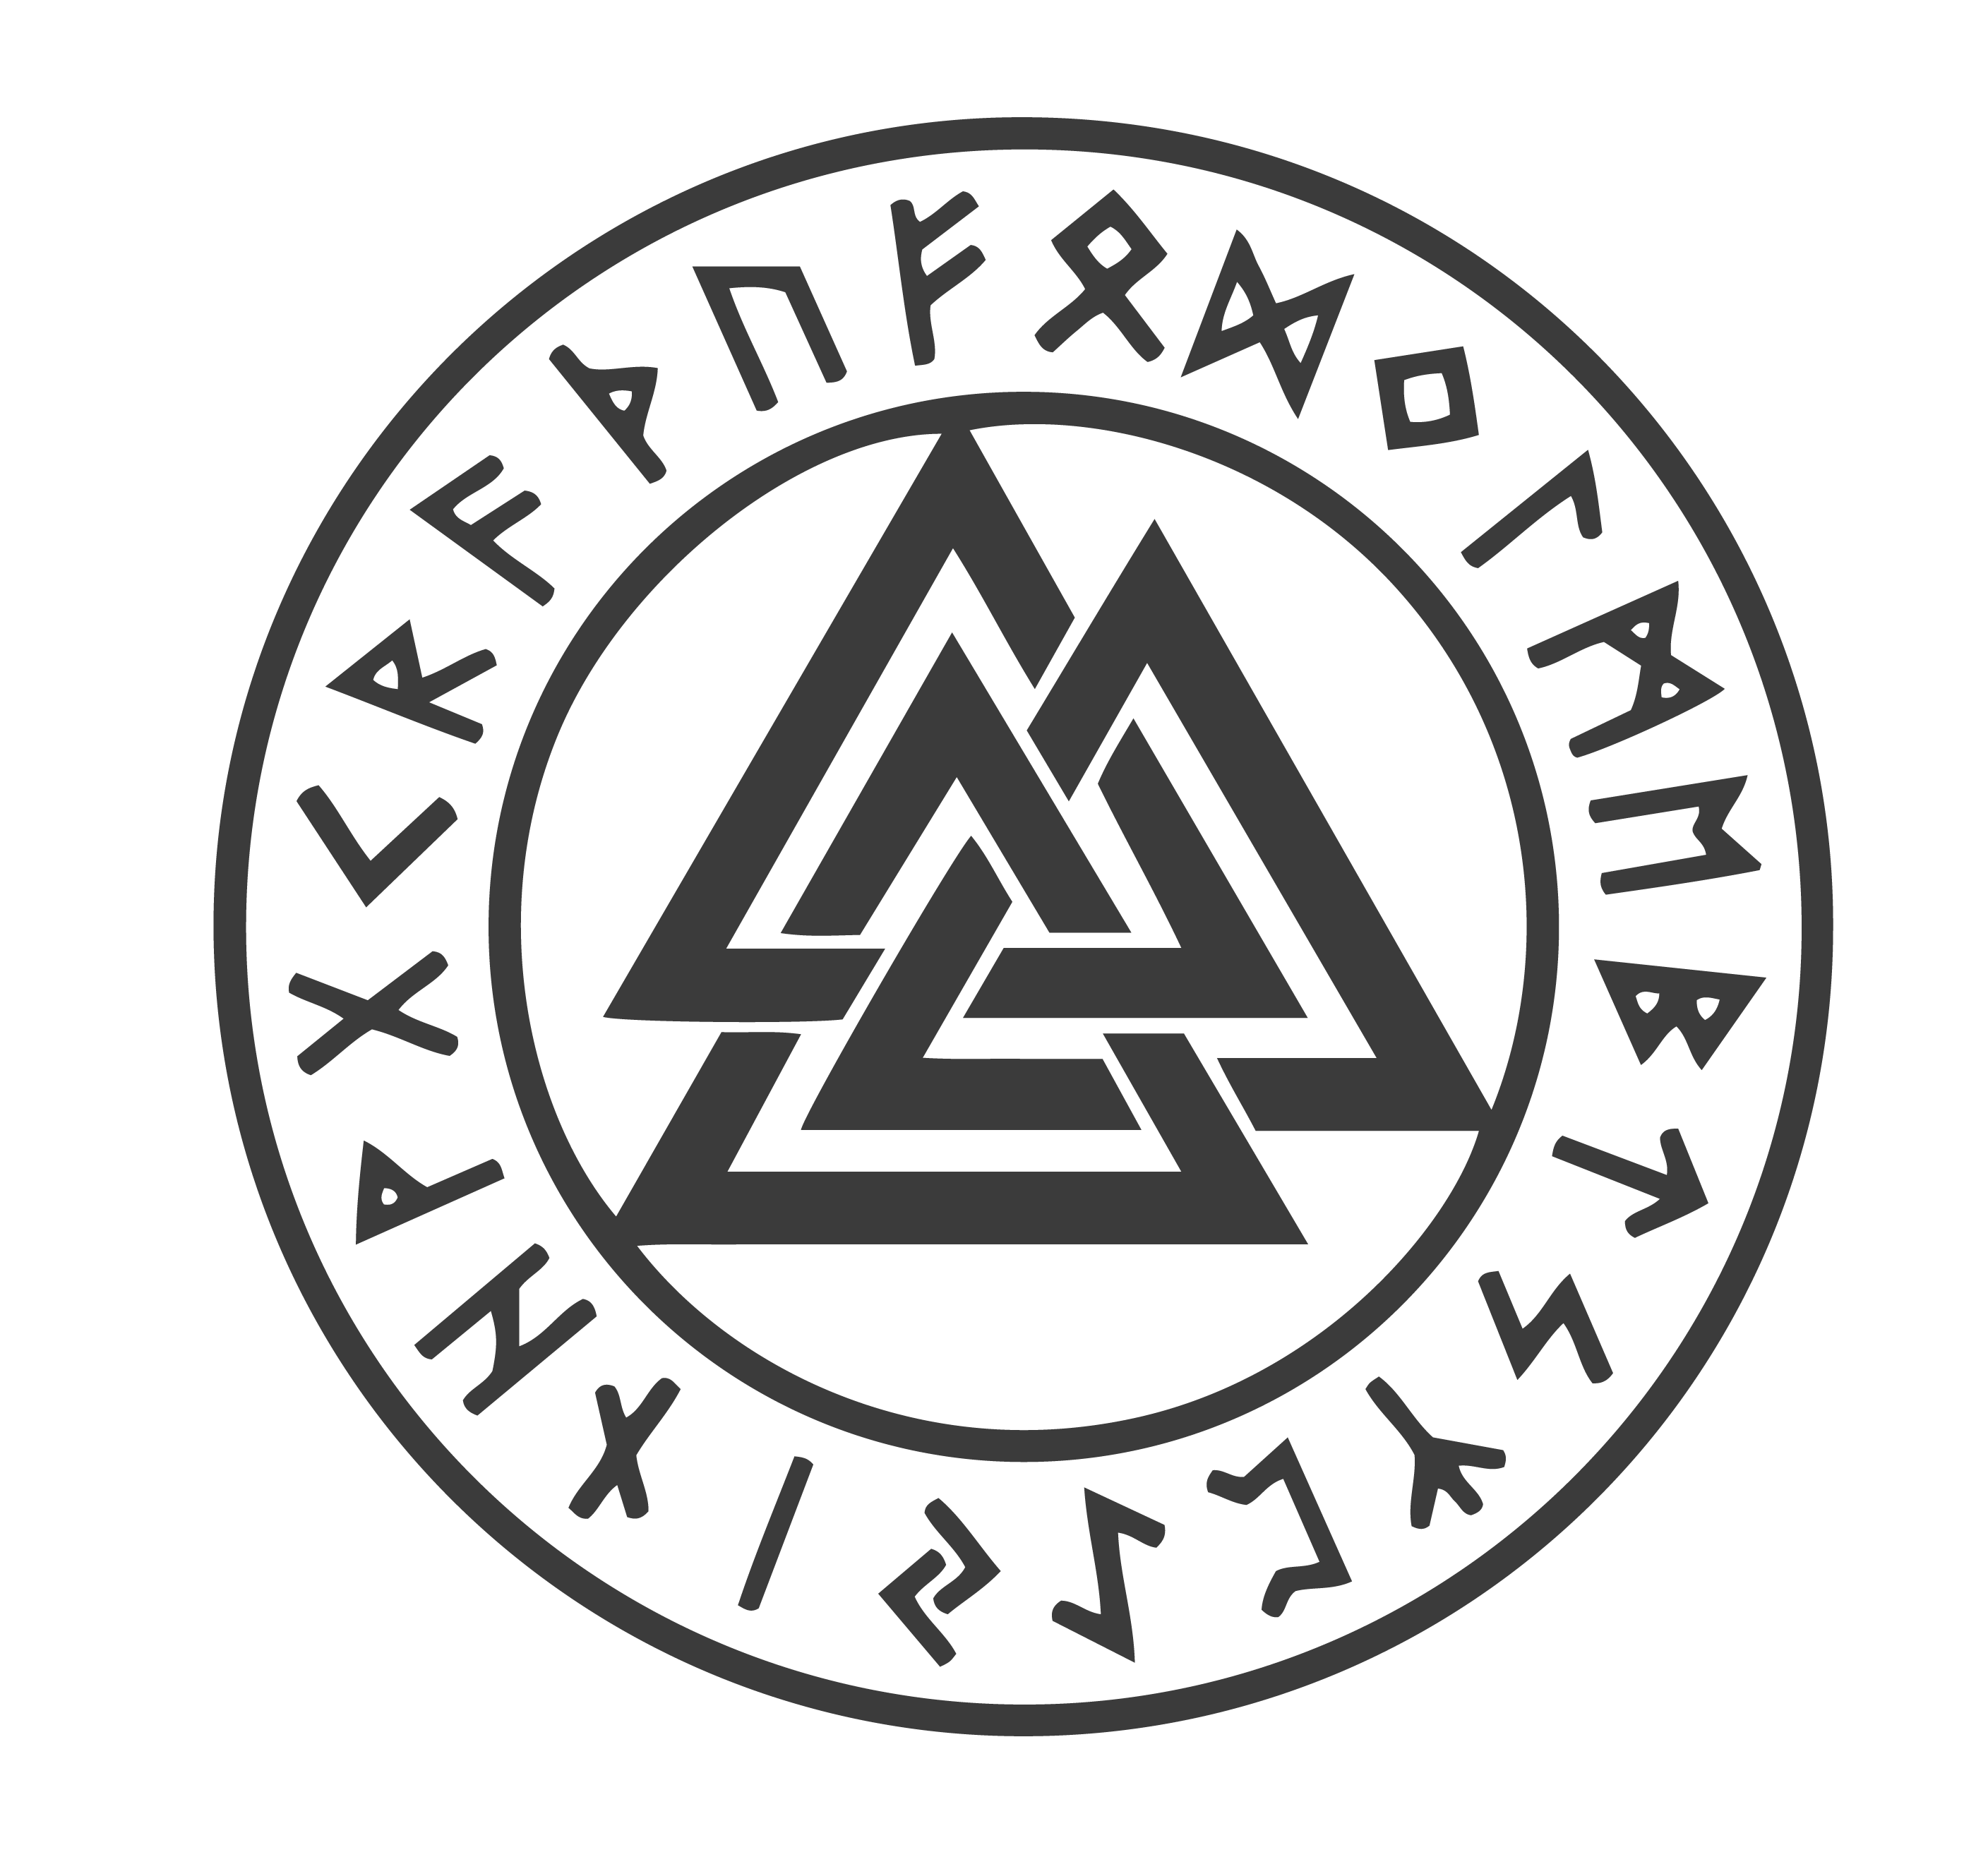 Viking symbolsnorse symbols and their meanings mythologian pagan symbols odins knot valknut meaning biocorpaavc